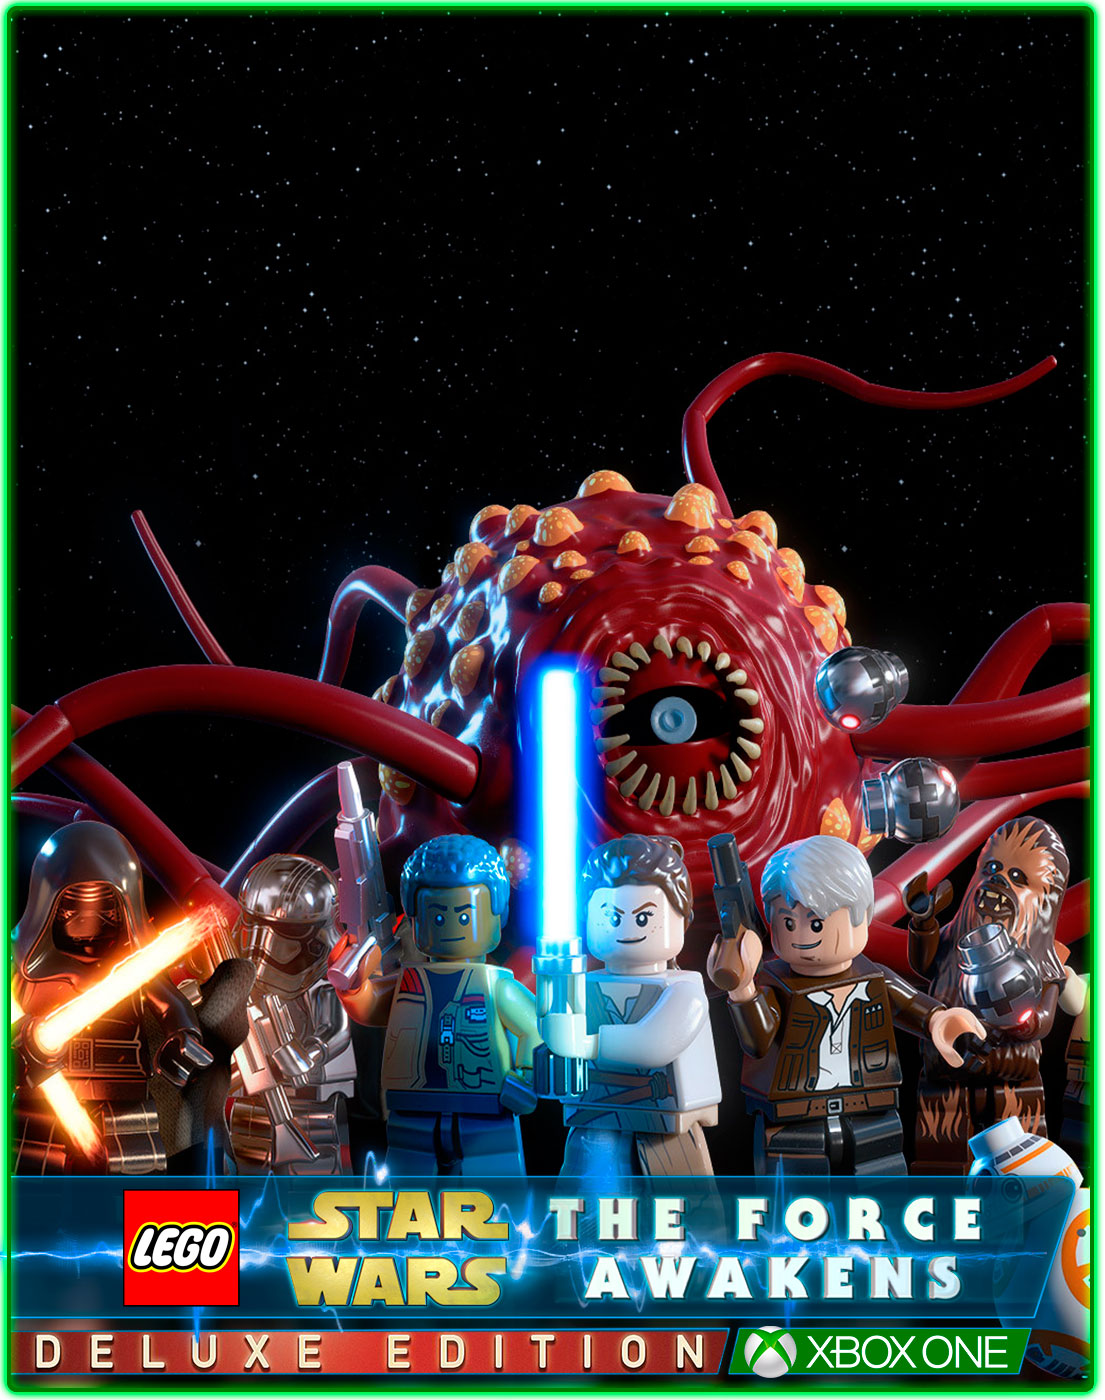 LEGO Star Wars The Force Awakens Deluxe Editio(XBOX ONE